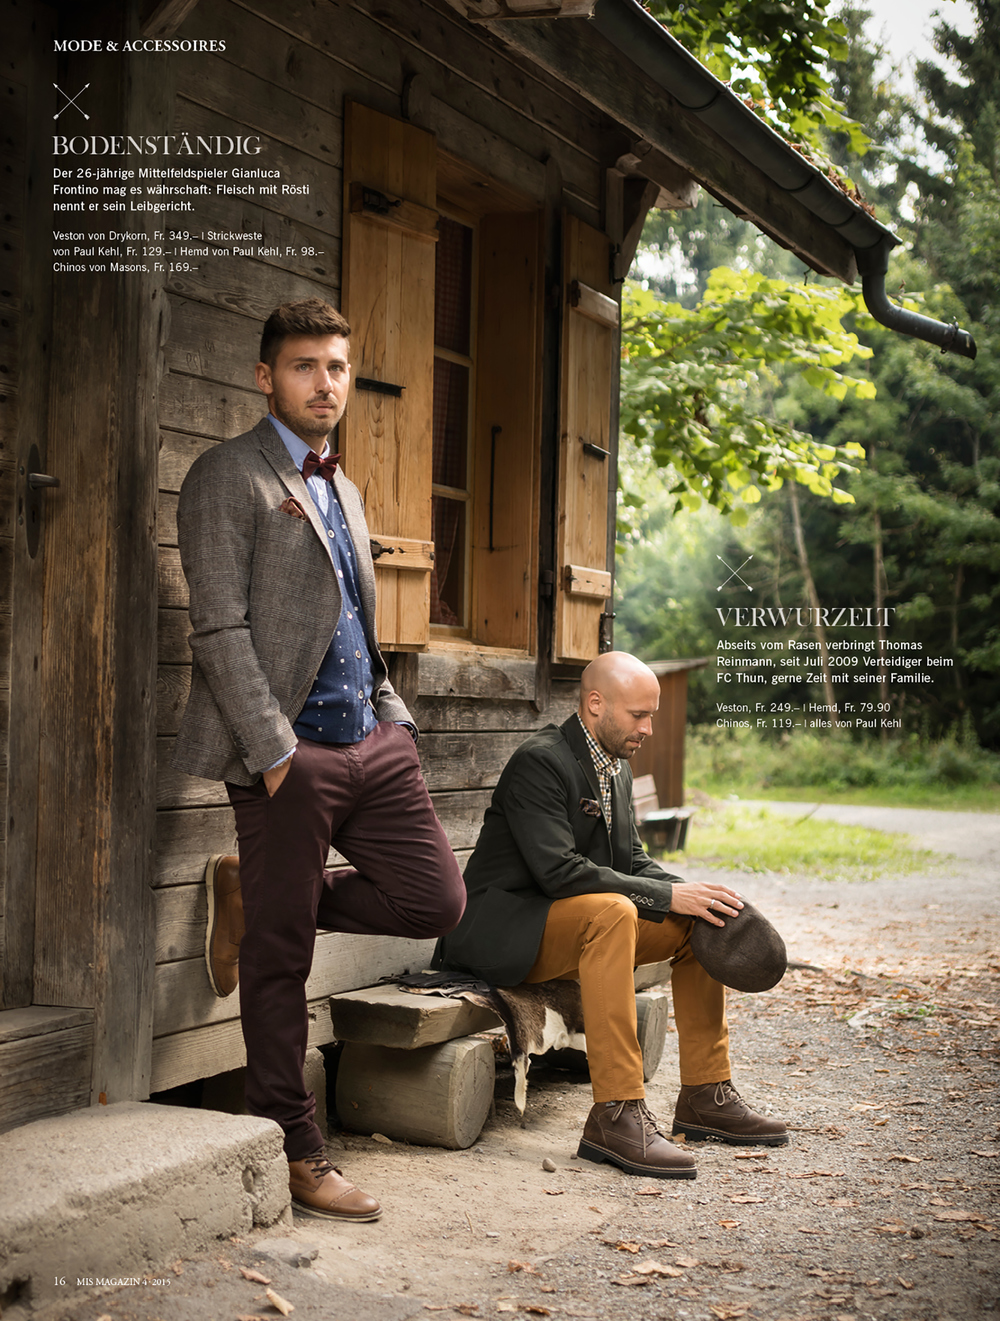 gianluca frontino & thomas reinmann for mis magazin